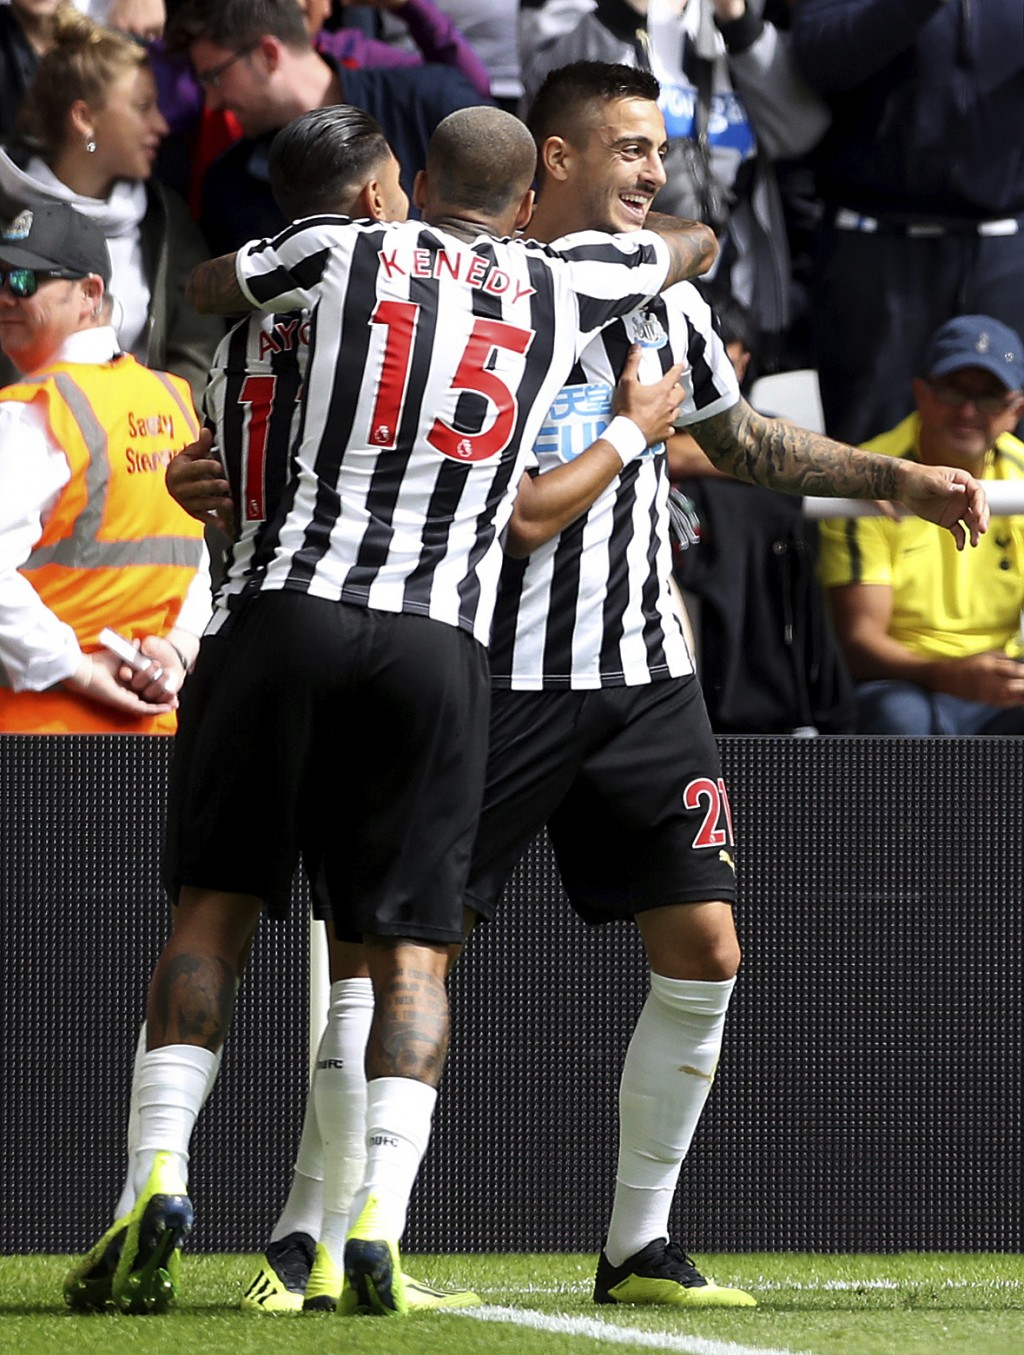 Newcastle United's Joselu, right, celebrates scoring his side's first goal of the game against Tottenham during their English Premier League soccer ma